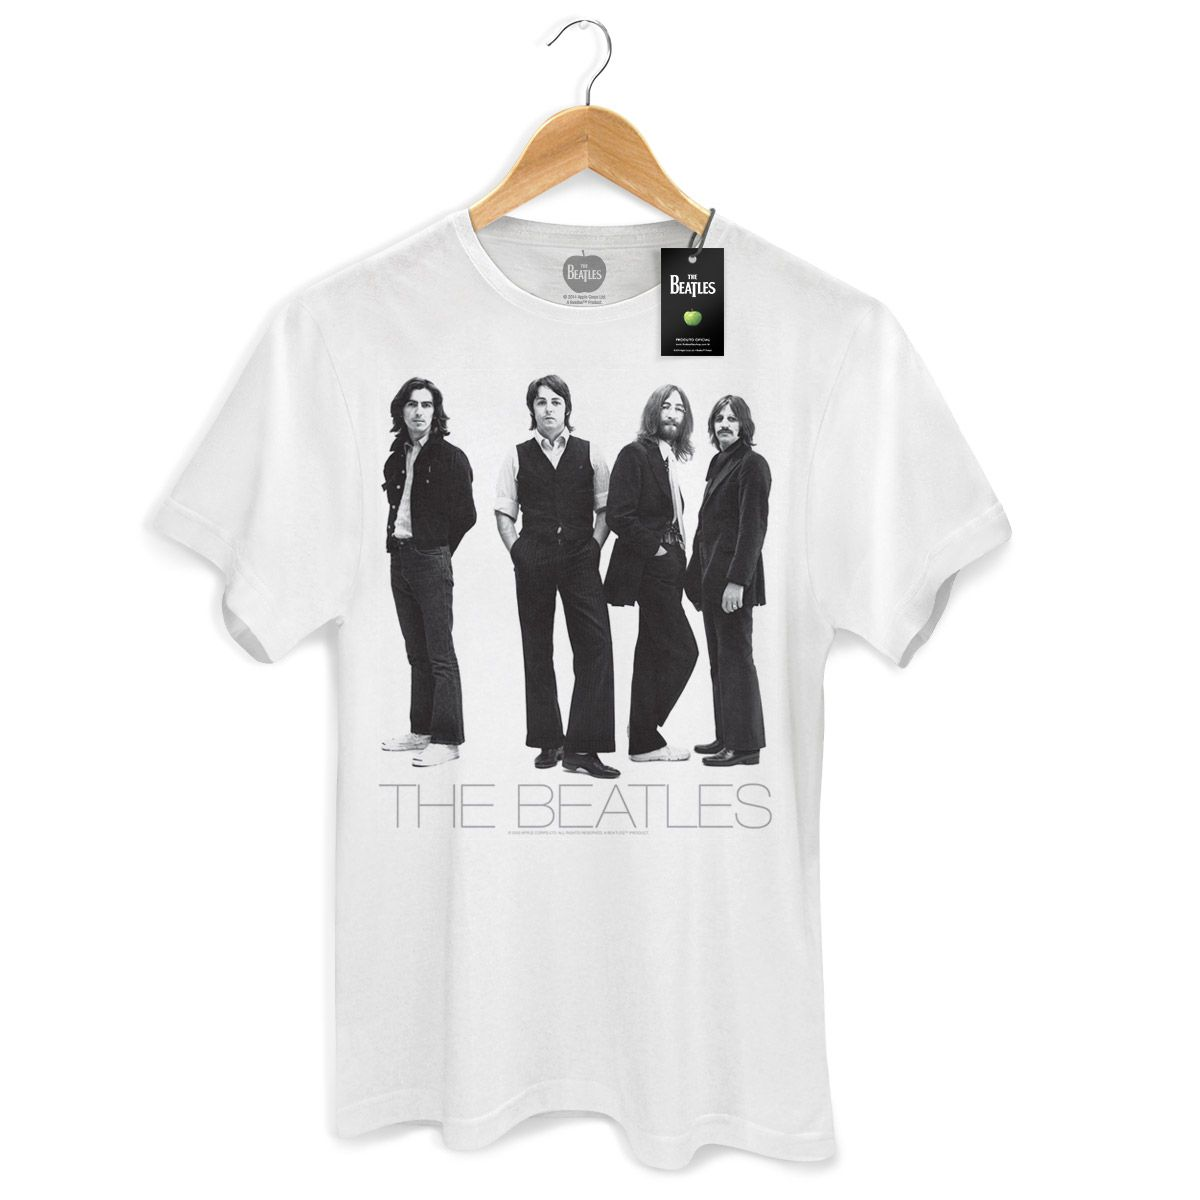 Camiseta Unissex The Beatles White Album Basic  - bandUP Store Marketplace